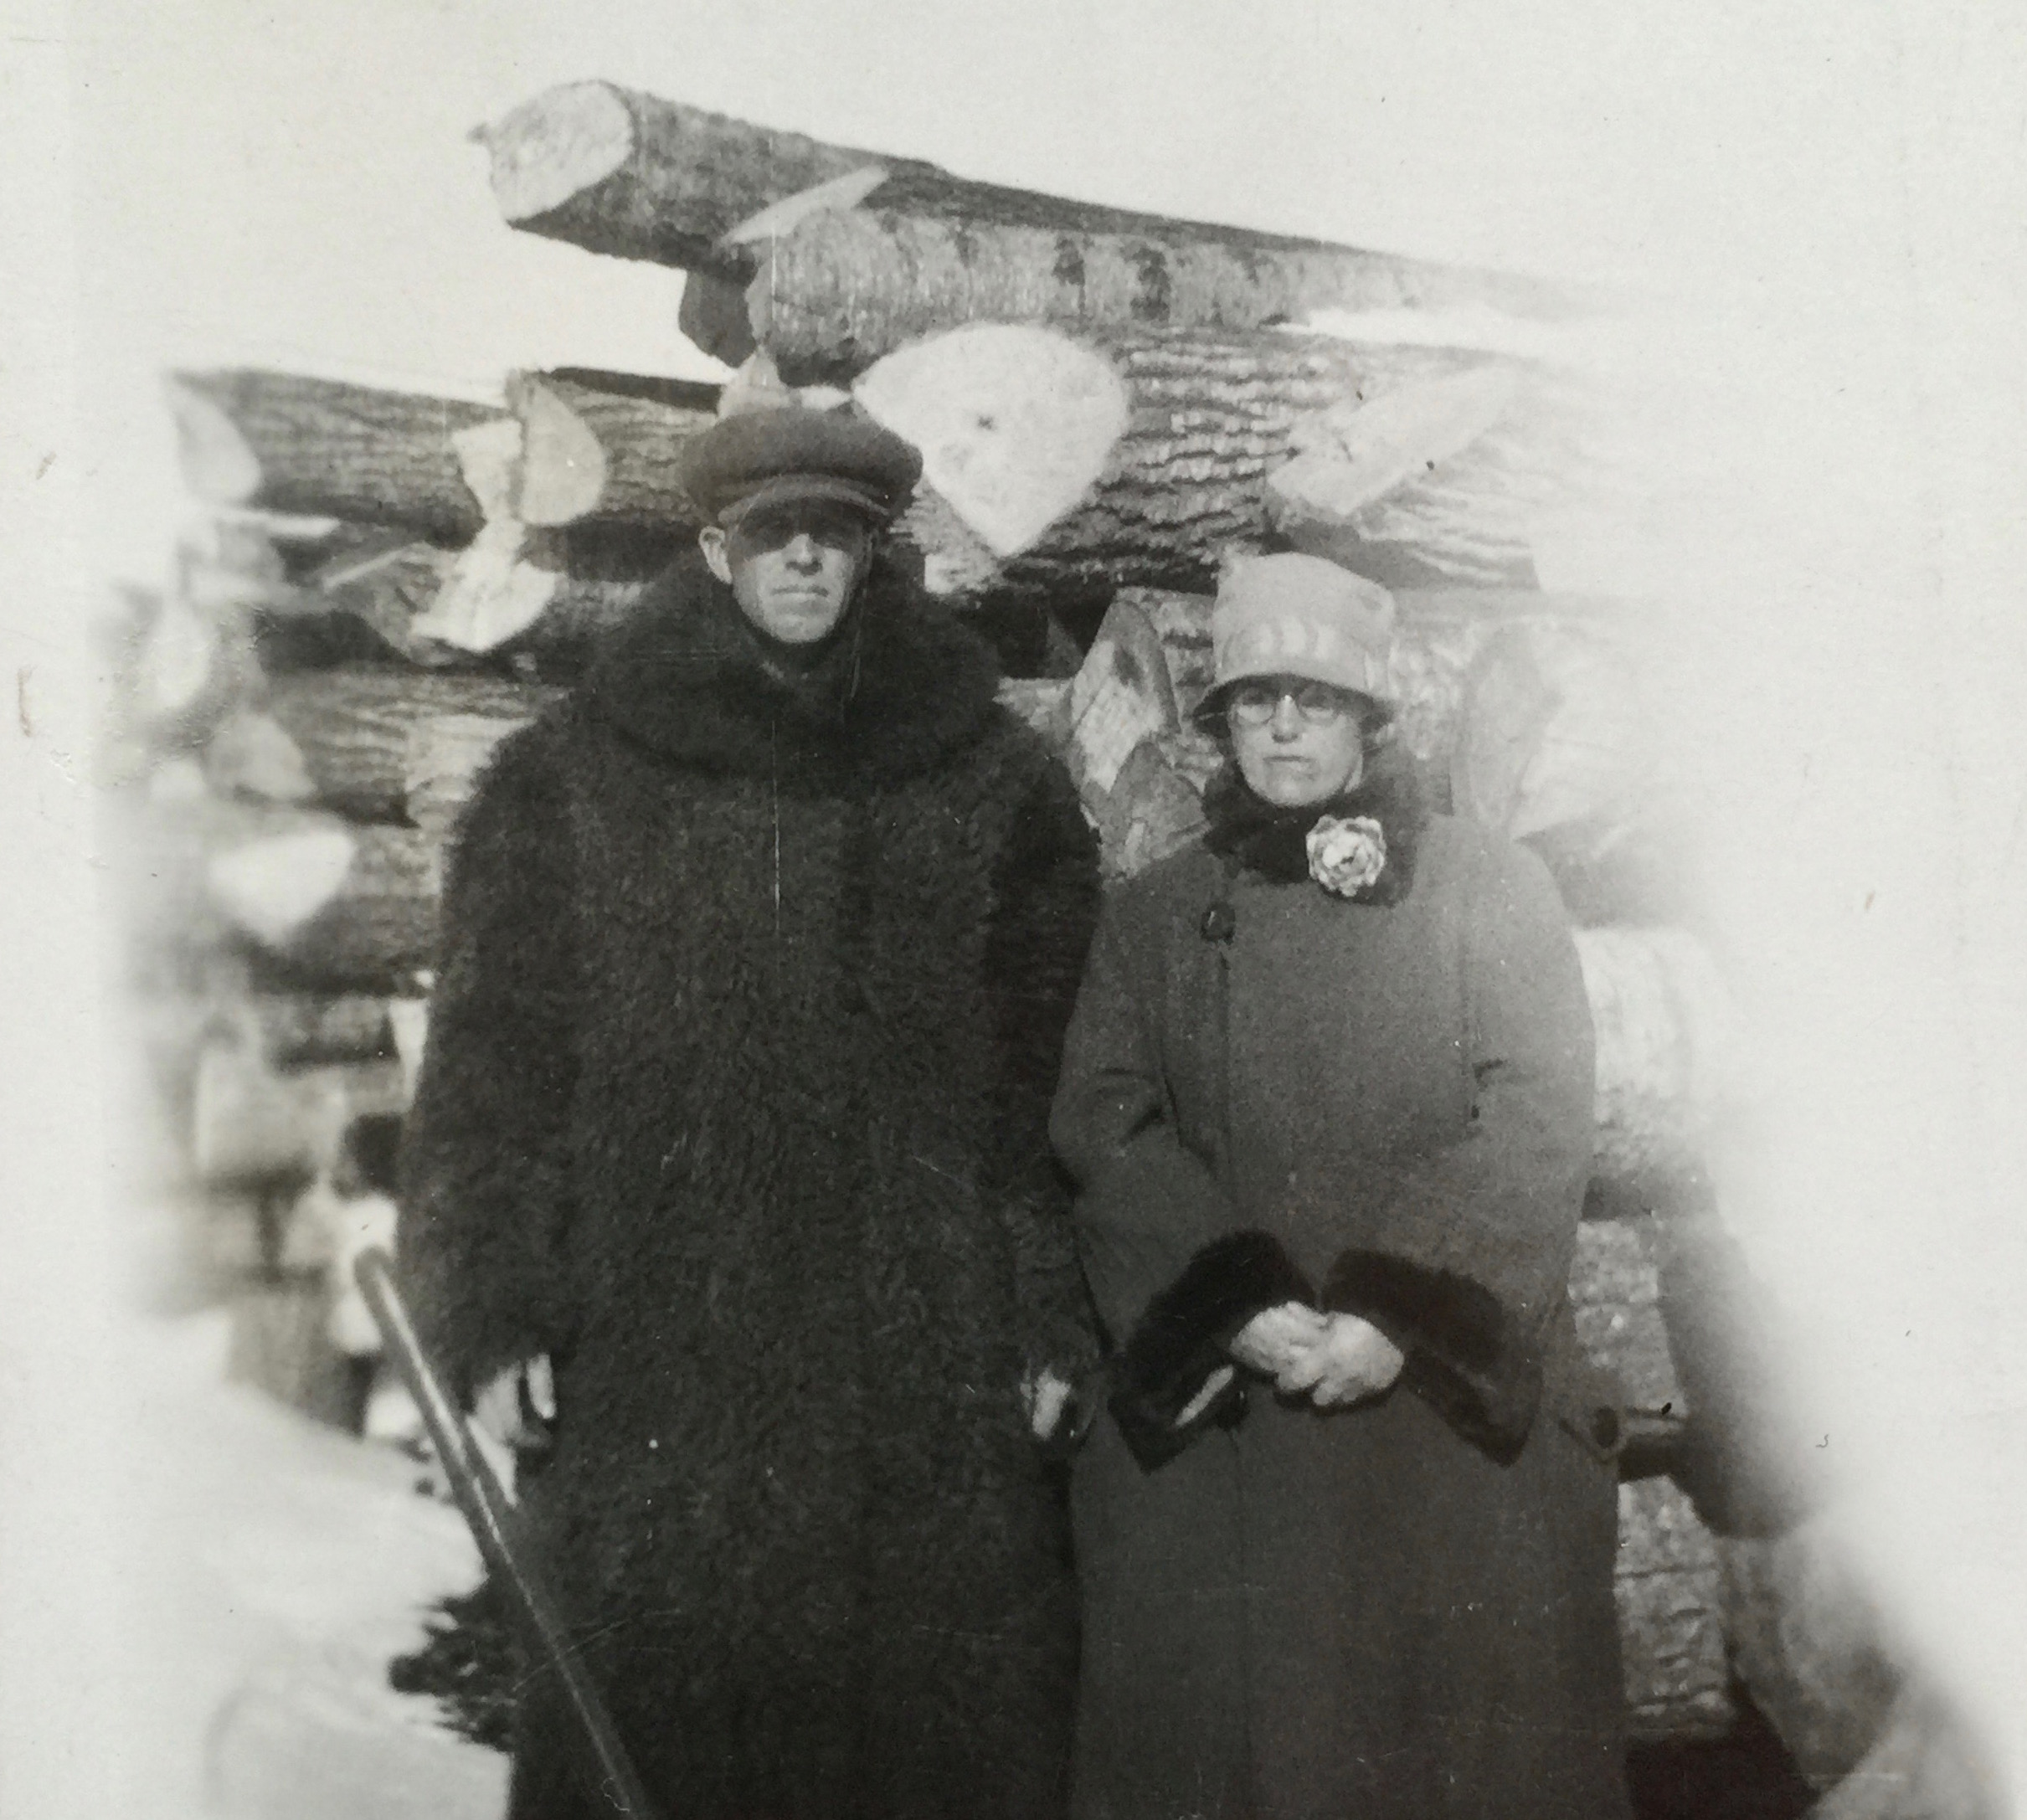 My parents were raised on farms on the prairies. Their ancestors came from Scotland, England, Ireland, and Holland.These old photos can make grandparents look remote and austere. They were anything but that.